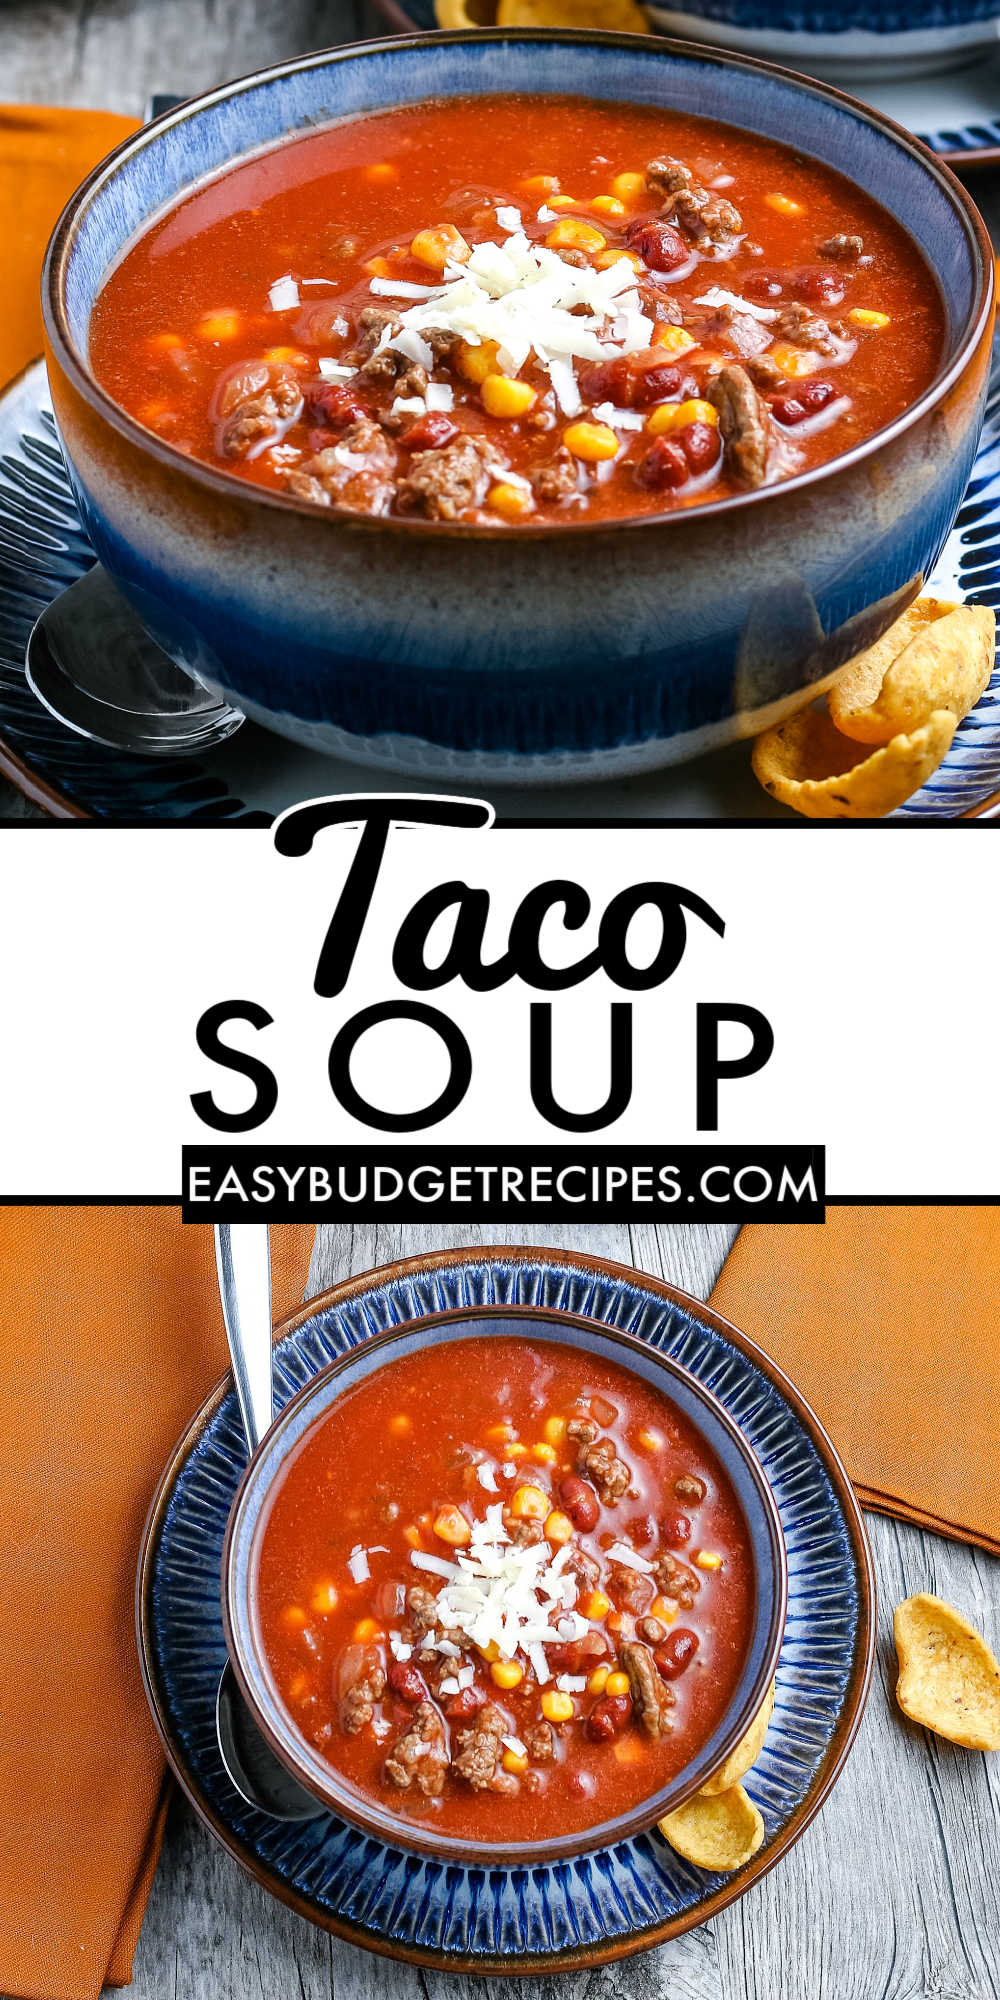 This easy Taco Soup recipe is made with just a handful of ingredients and 40 minutes of your time. It's great for easy weeknight meals. via @easybudgetrecipes